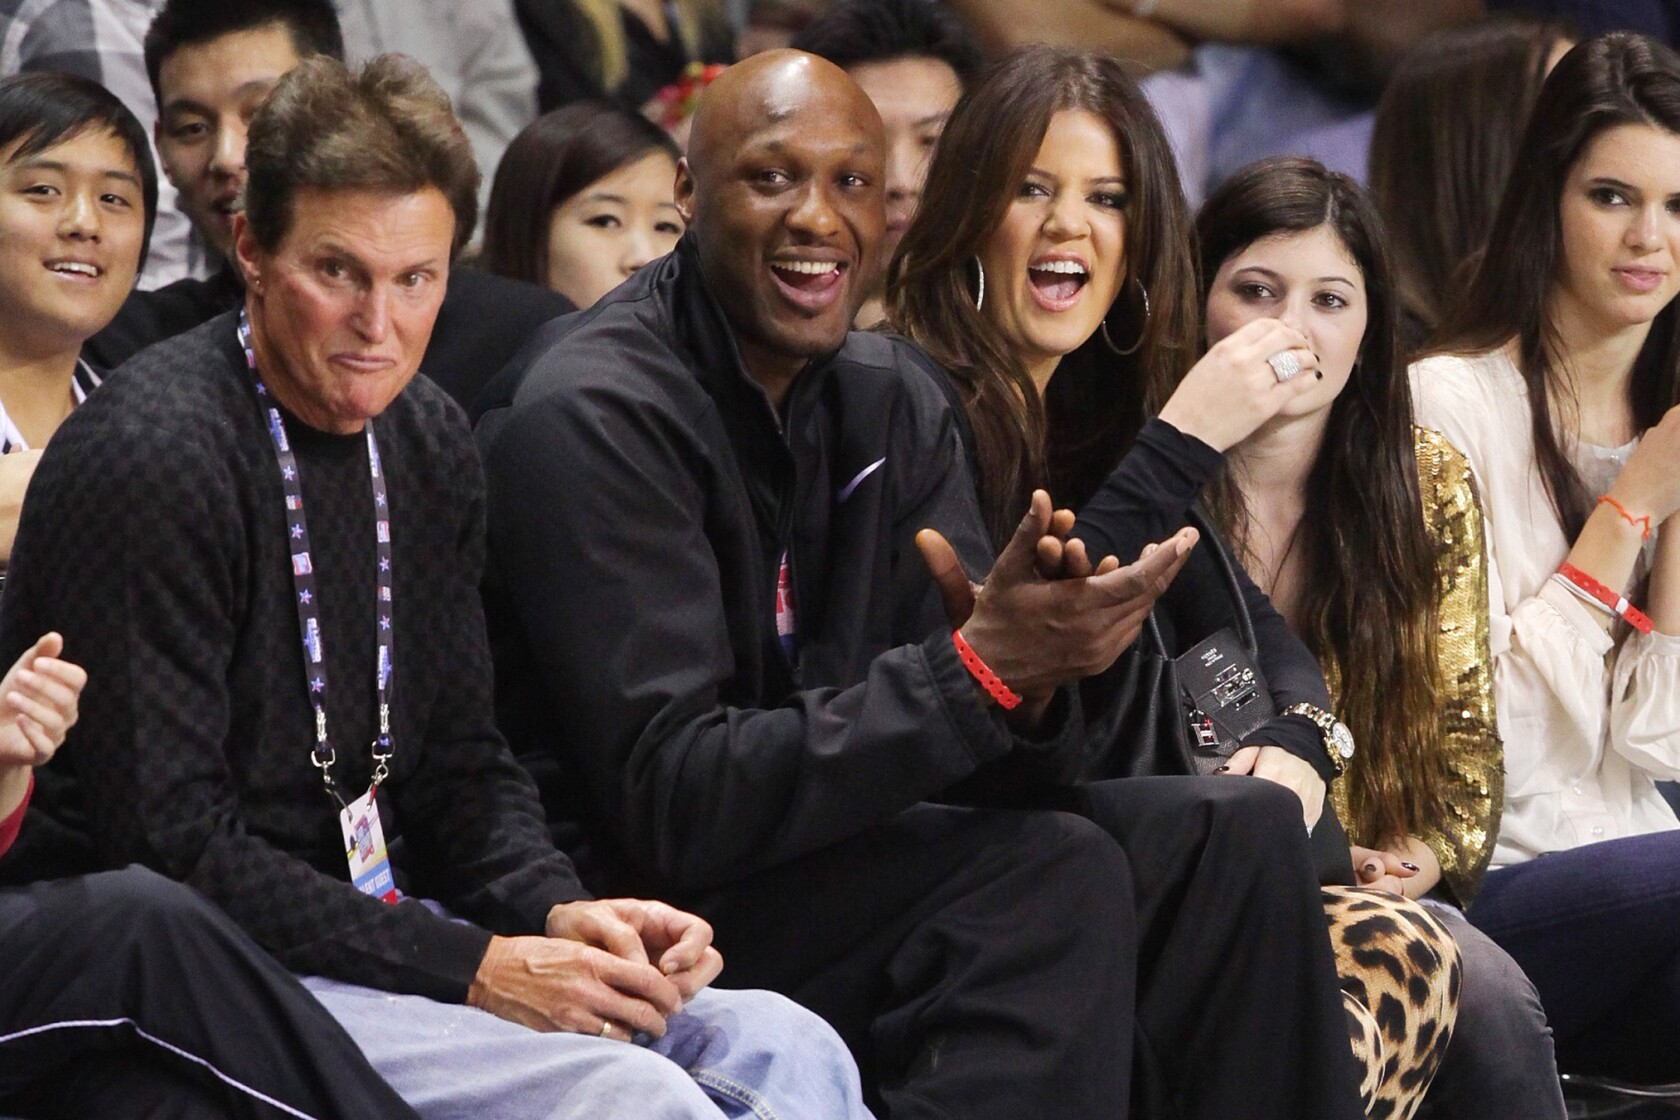 Lamar Odom took cocaine and 10 doses of a Viagra-like medication